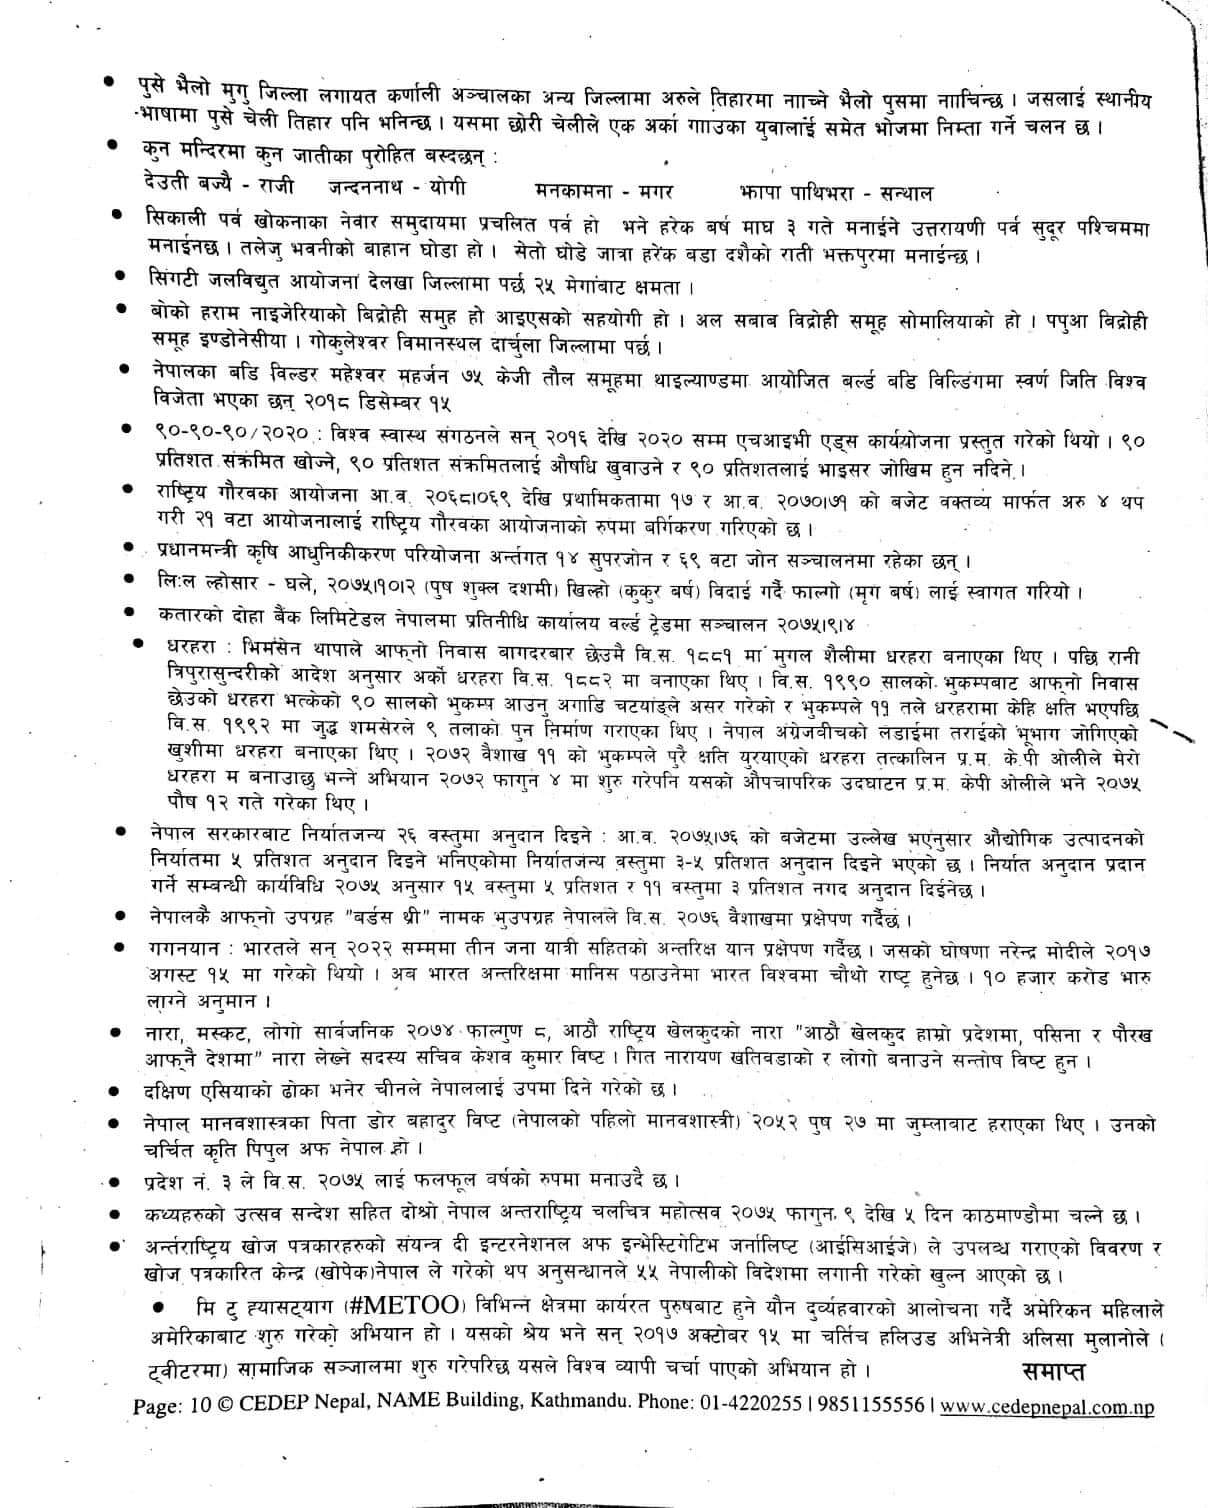 psc.gov.np kharidar question, kharidar question answer 2074, kharidar exam question 2074, loksewa kharidar, haridar model questions, kharidar first paper, kharidar model questions, lok sewa aayog kharidar model questions, lok sewa aayog kharidar, kharidar ko syllabus, kharidar exam, lok sewa aayog kharidar question, kharidar question answer 2075, kharidar question 2074, kharidar question answer, model question of kharidar, kharidar iq, loksewa kharidar question, lok sewa aayog, loksewa, gorkhapatra loksewa, loksewa guide, lok sewa aayog exam, loksewa exam, loksewa quiz, karidar first paper, loksewa news, lok sewa aayog exam 2075 lok sewa aayog exam for kharidar, gorkhapatra loksewa, loksewa gorkhapatra, loksewa exam 2019, loksewa exam 2075, shikshak sewa aayog 2075, loksewa online, lok sewa aayog exam, kharidar second paper, loksewa tricks, loksewa iq, lok sewa aayog 2074 online loksewa, lok sewa guide, kharidar question 2074, lok sewa preparation class, kharidar question 2074, lok sewa aayog exam, खरीदार, लोक सेवा आयोग, लोक सेवा आयोग नेपाल, lok sewa aayog question, lok sewa aayog question 2075,  lok sewa aayog,